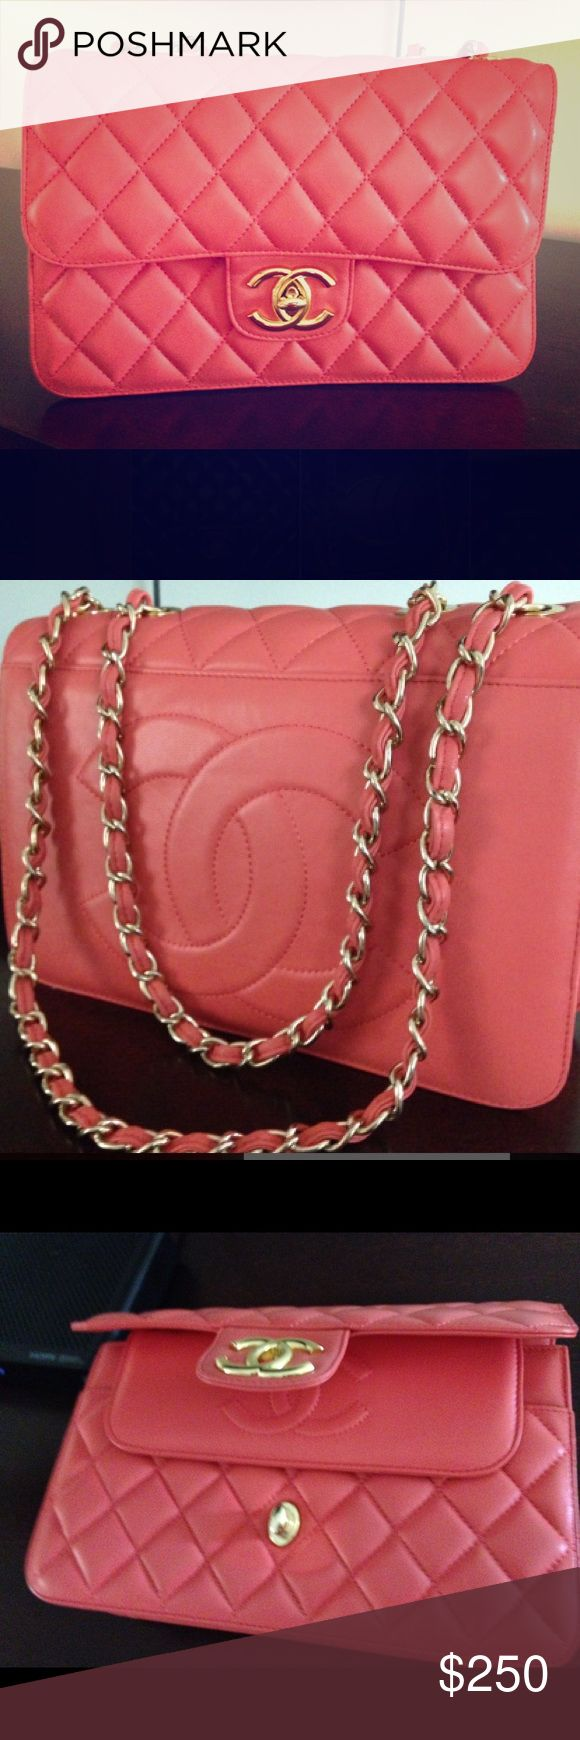 Designer style quilted flap gold chain strap purse Brand new genuine leather! Beautiful pink/salmon color quilted leather with gold hardware. Medium size. This was a gift so I am not sure of the authenticity hence the price. #CC #flap #classic #quilted #toryburch #katespade #chanel #dior Bags Mini Bags